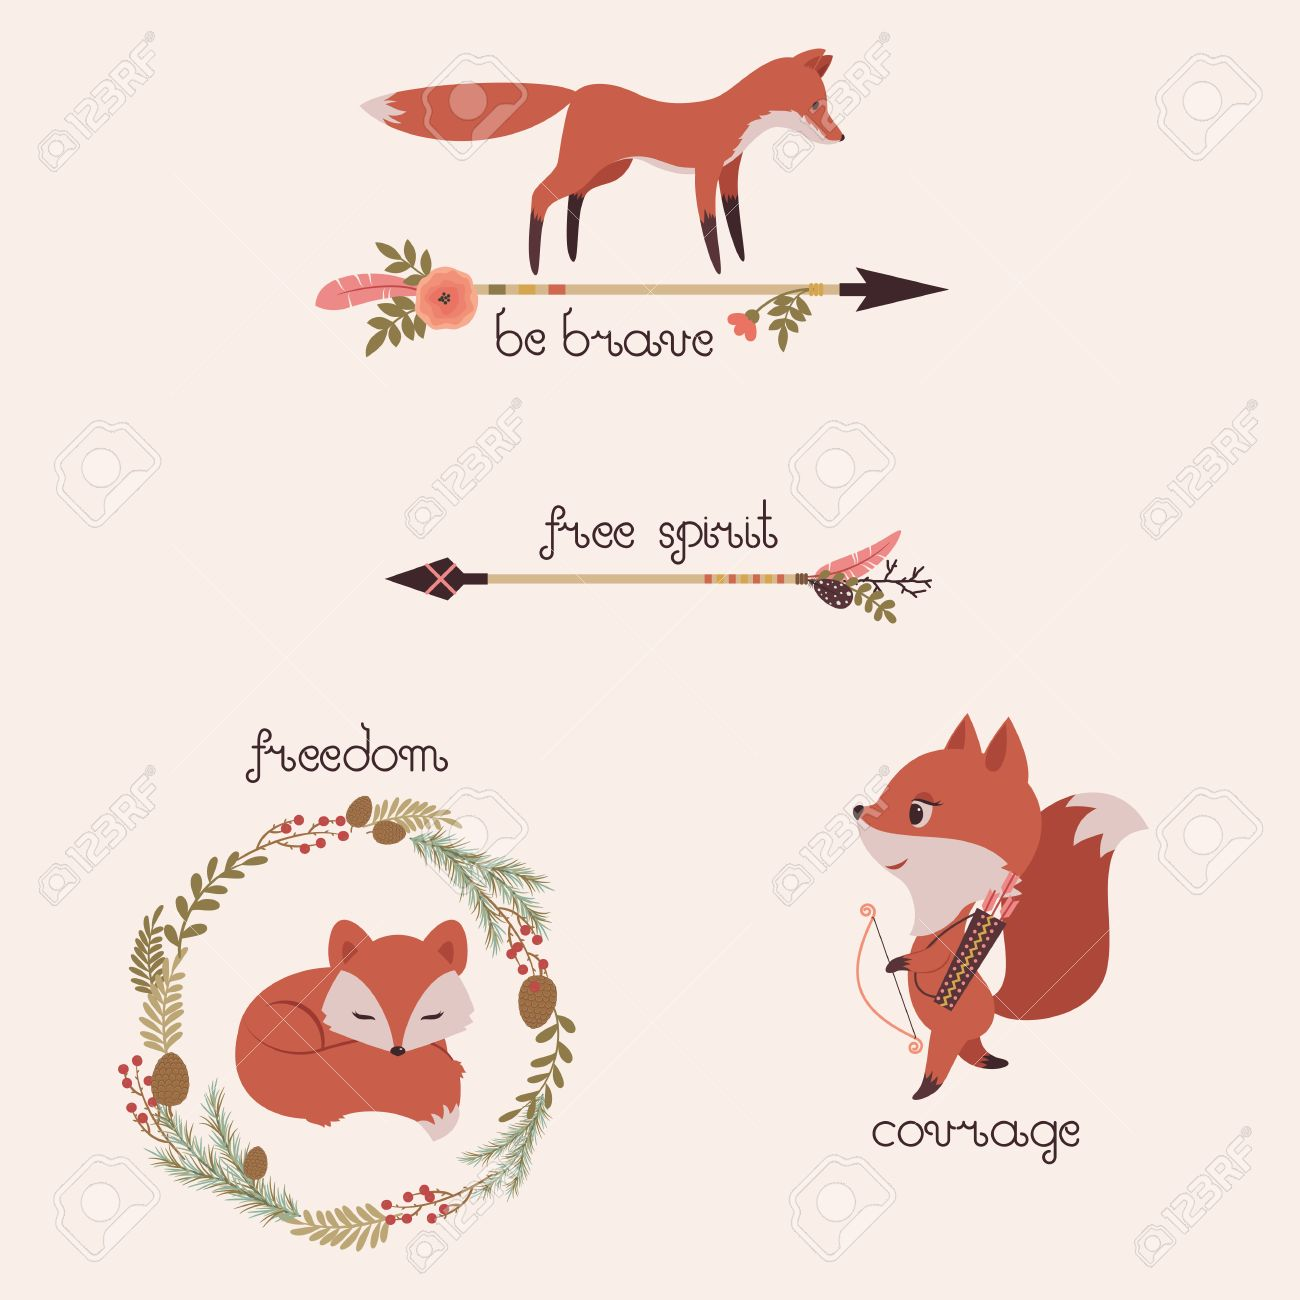 three foxes illustrations with floral arrows and wreath original